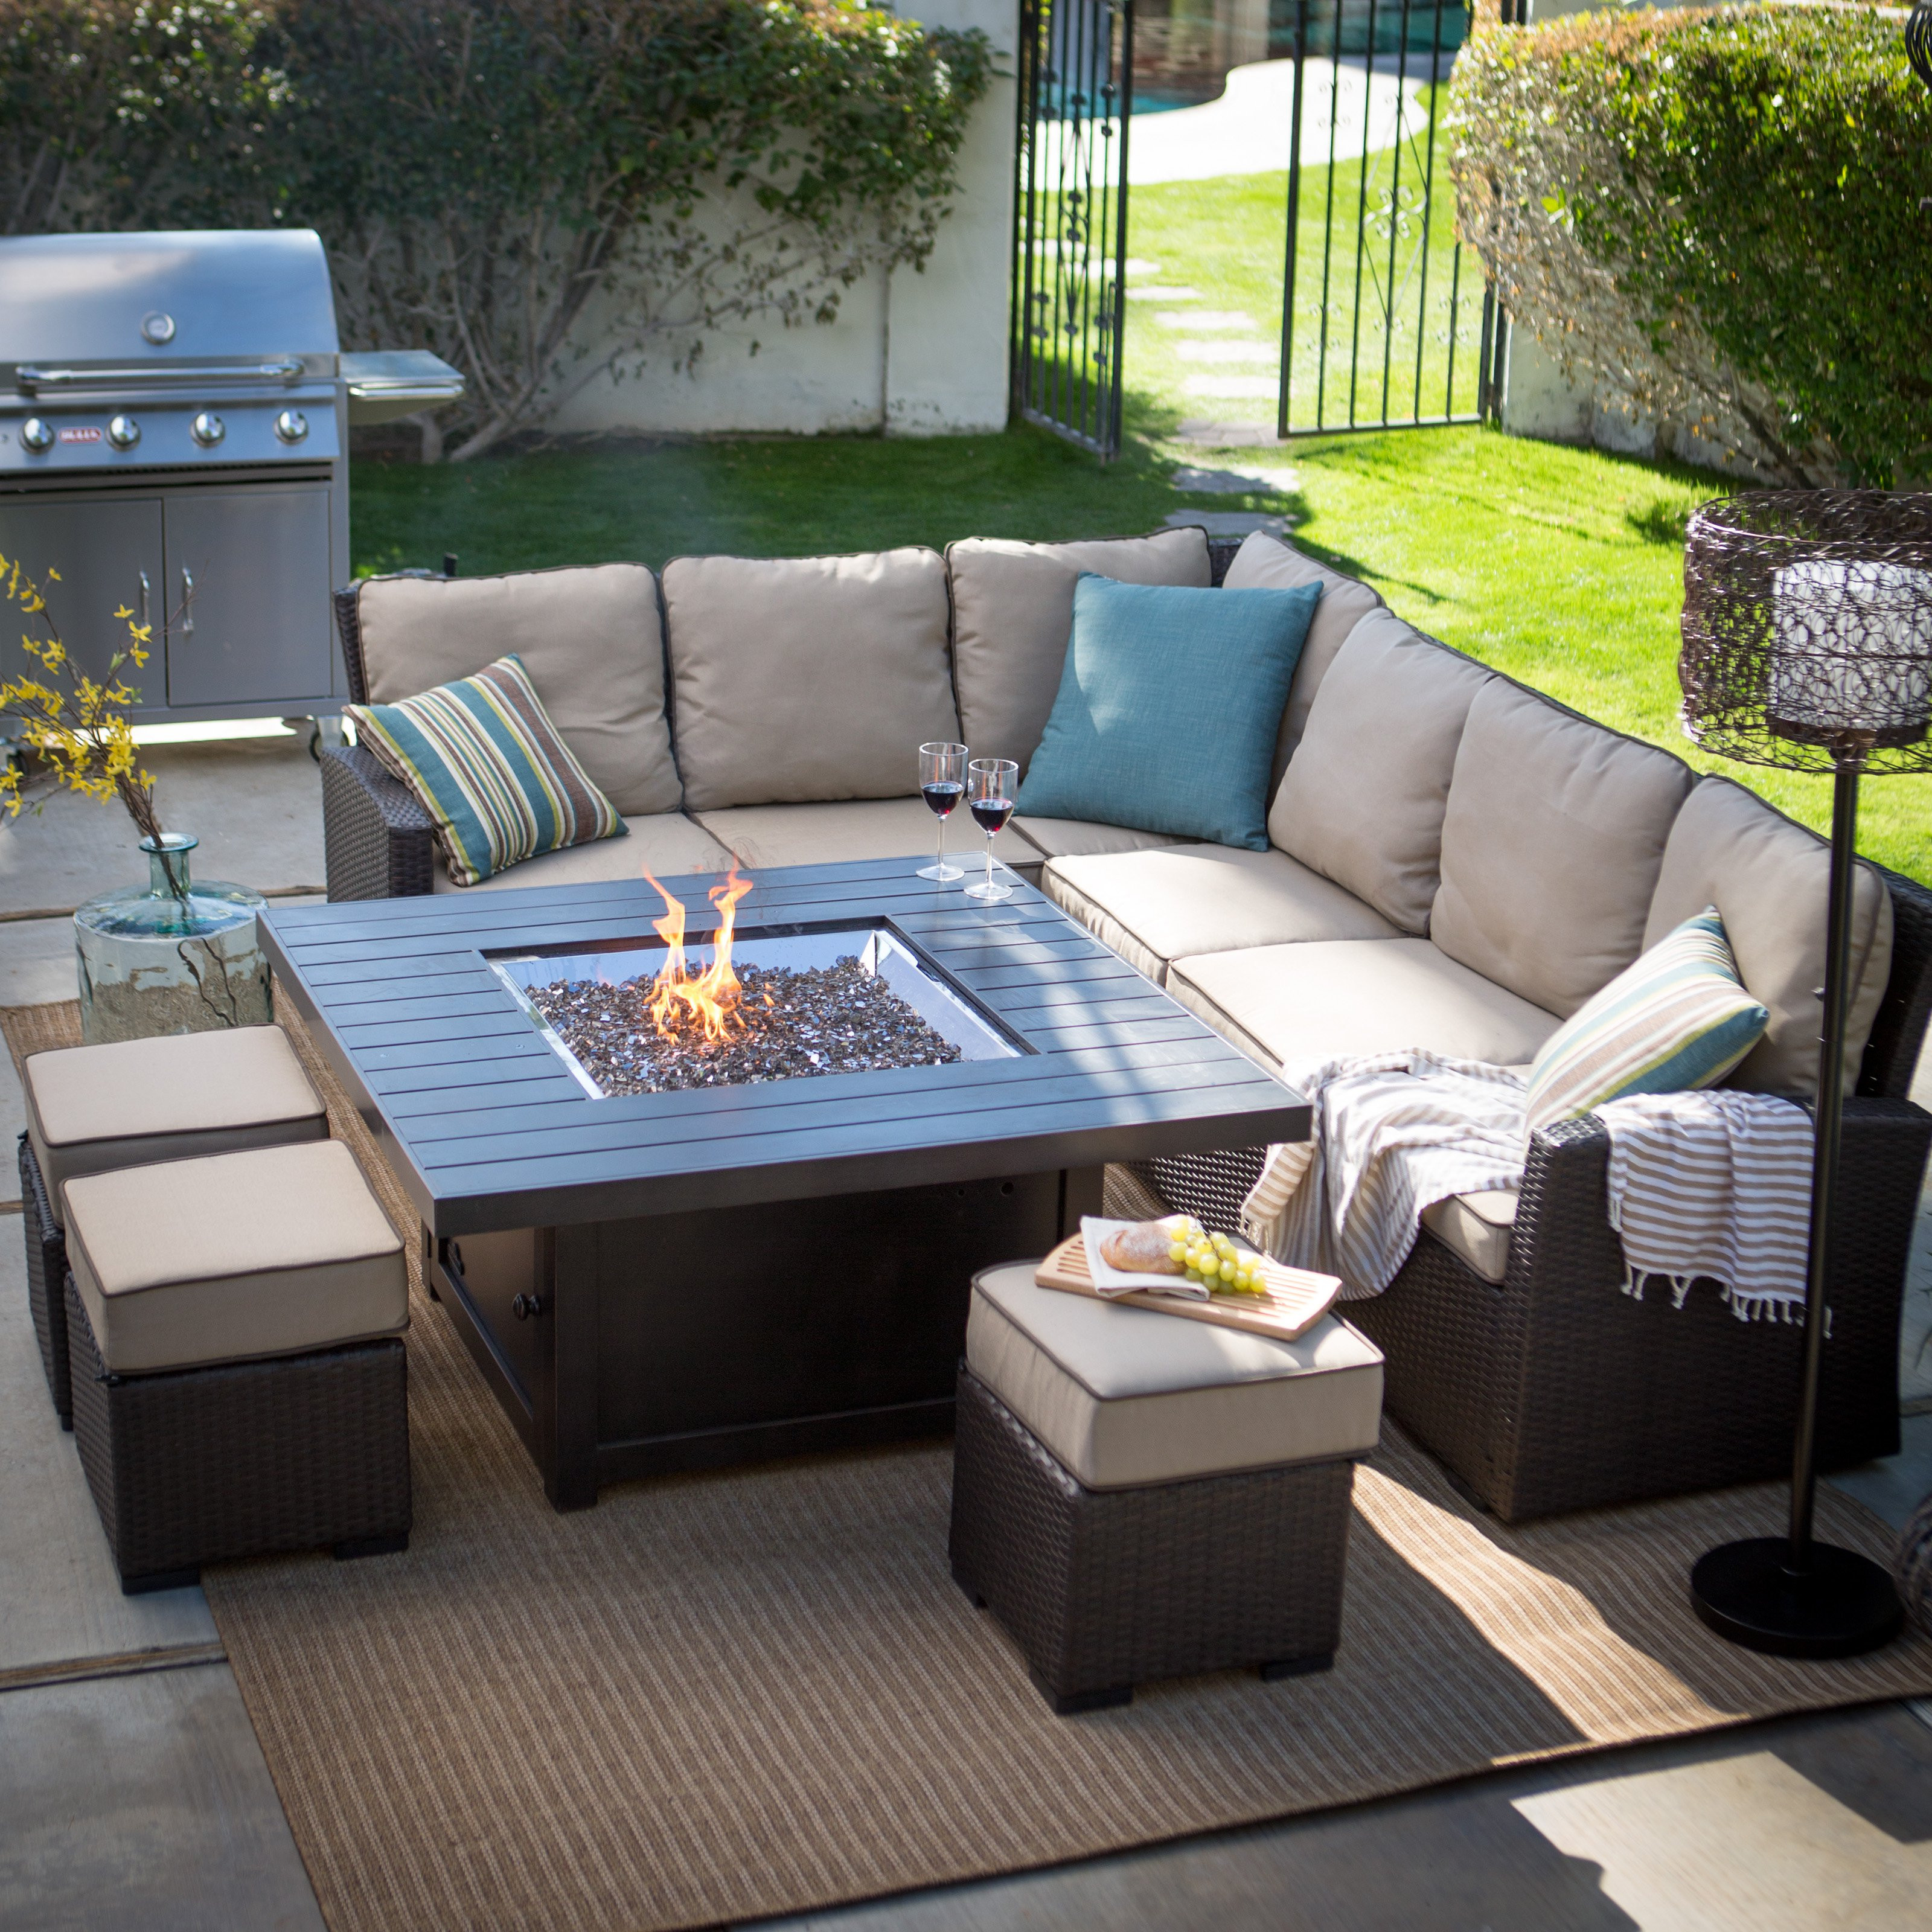 Best ideas about Outdoor Fire Pit Sets . Save or Pin Belham Living Monticello Fire Pit Chat Set Fire Pit Now.